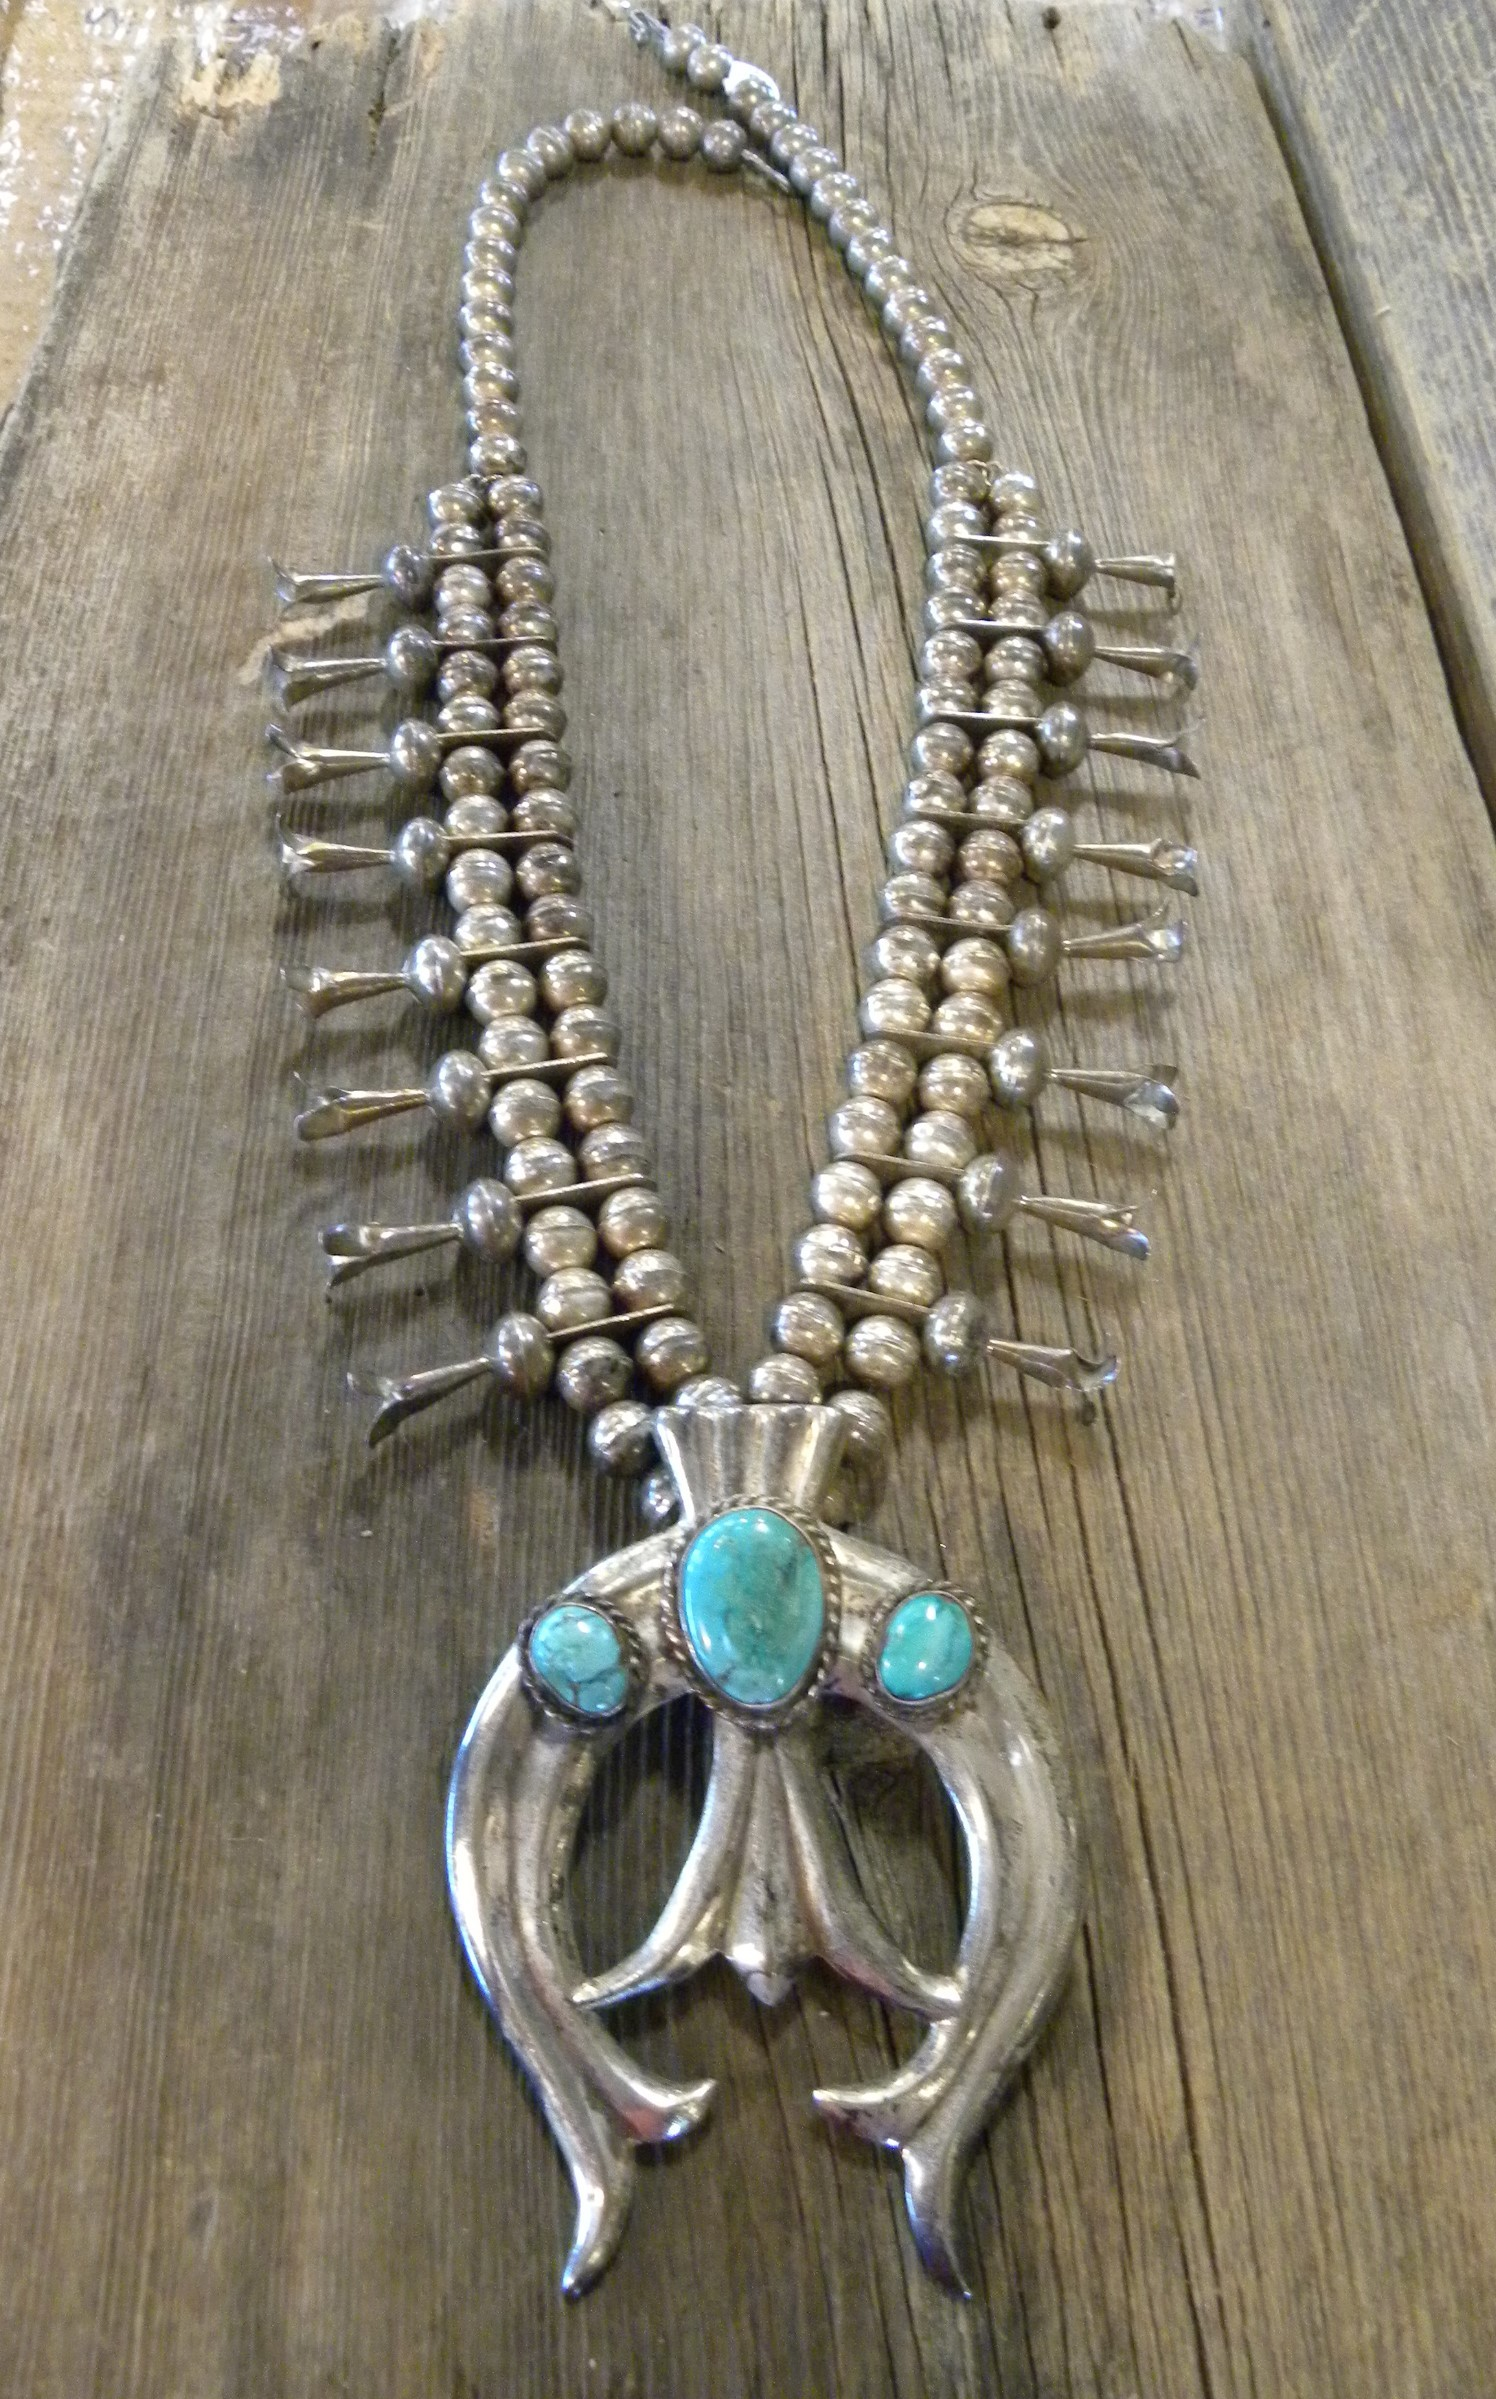 SBN8 Pawn Circa 1950's Navajo Handmade Turquoise Squash Blossom Necklace